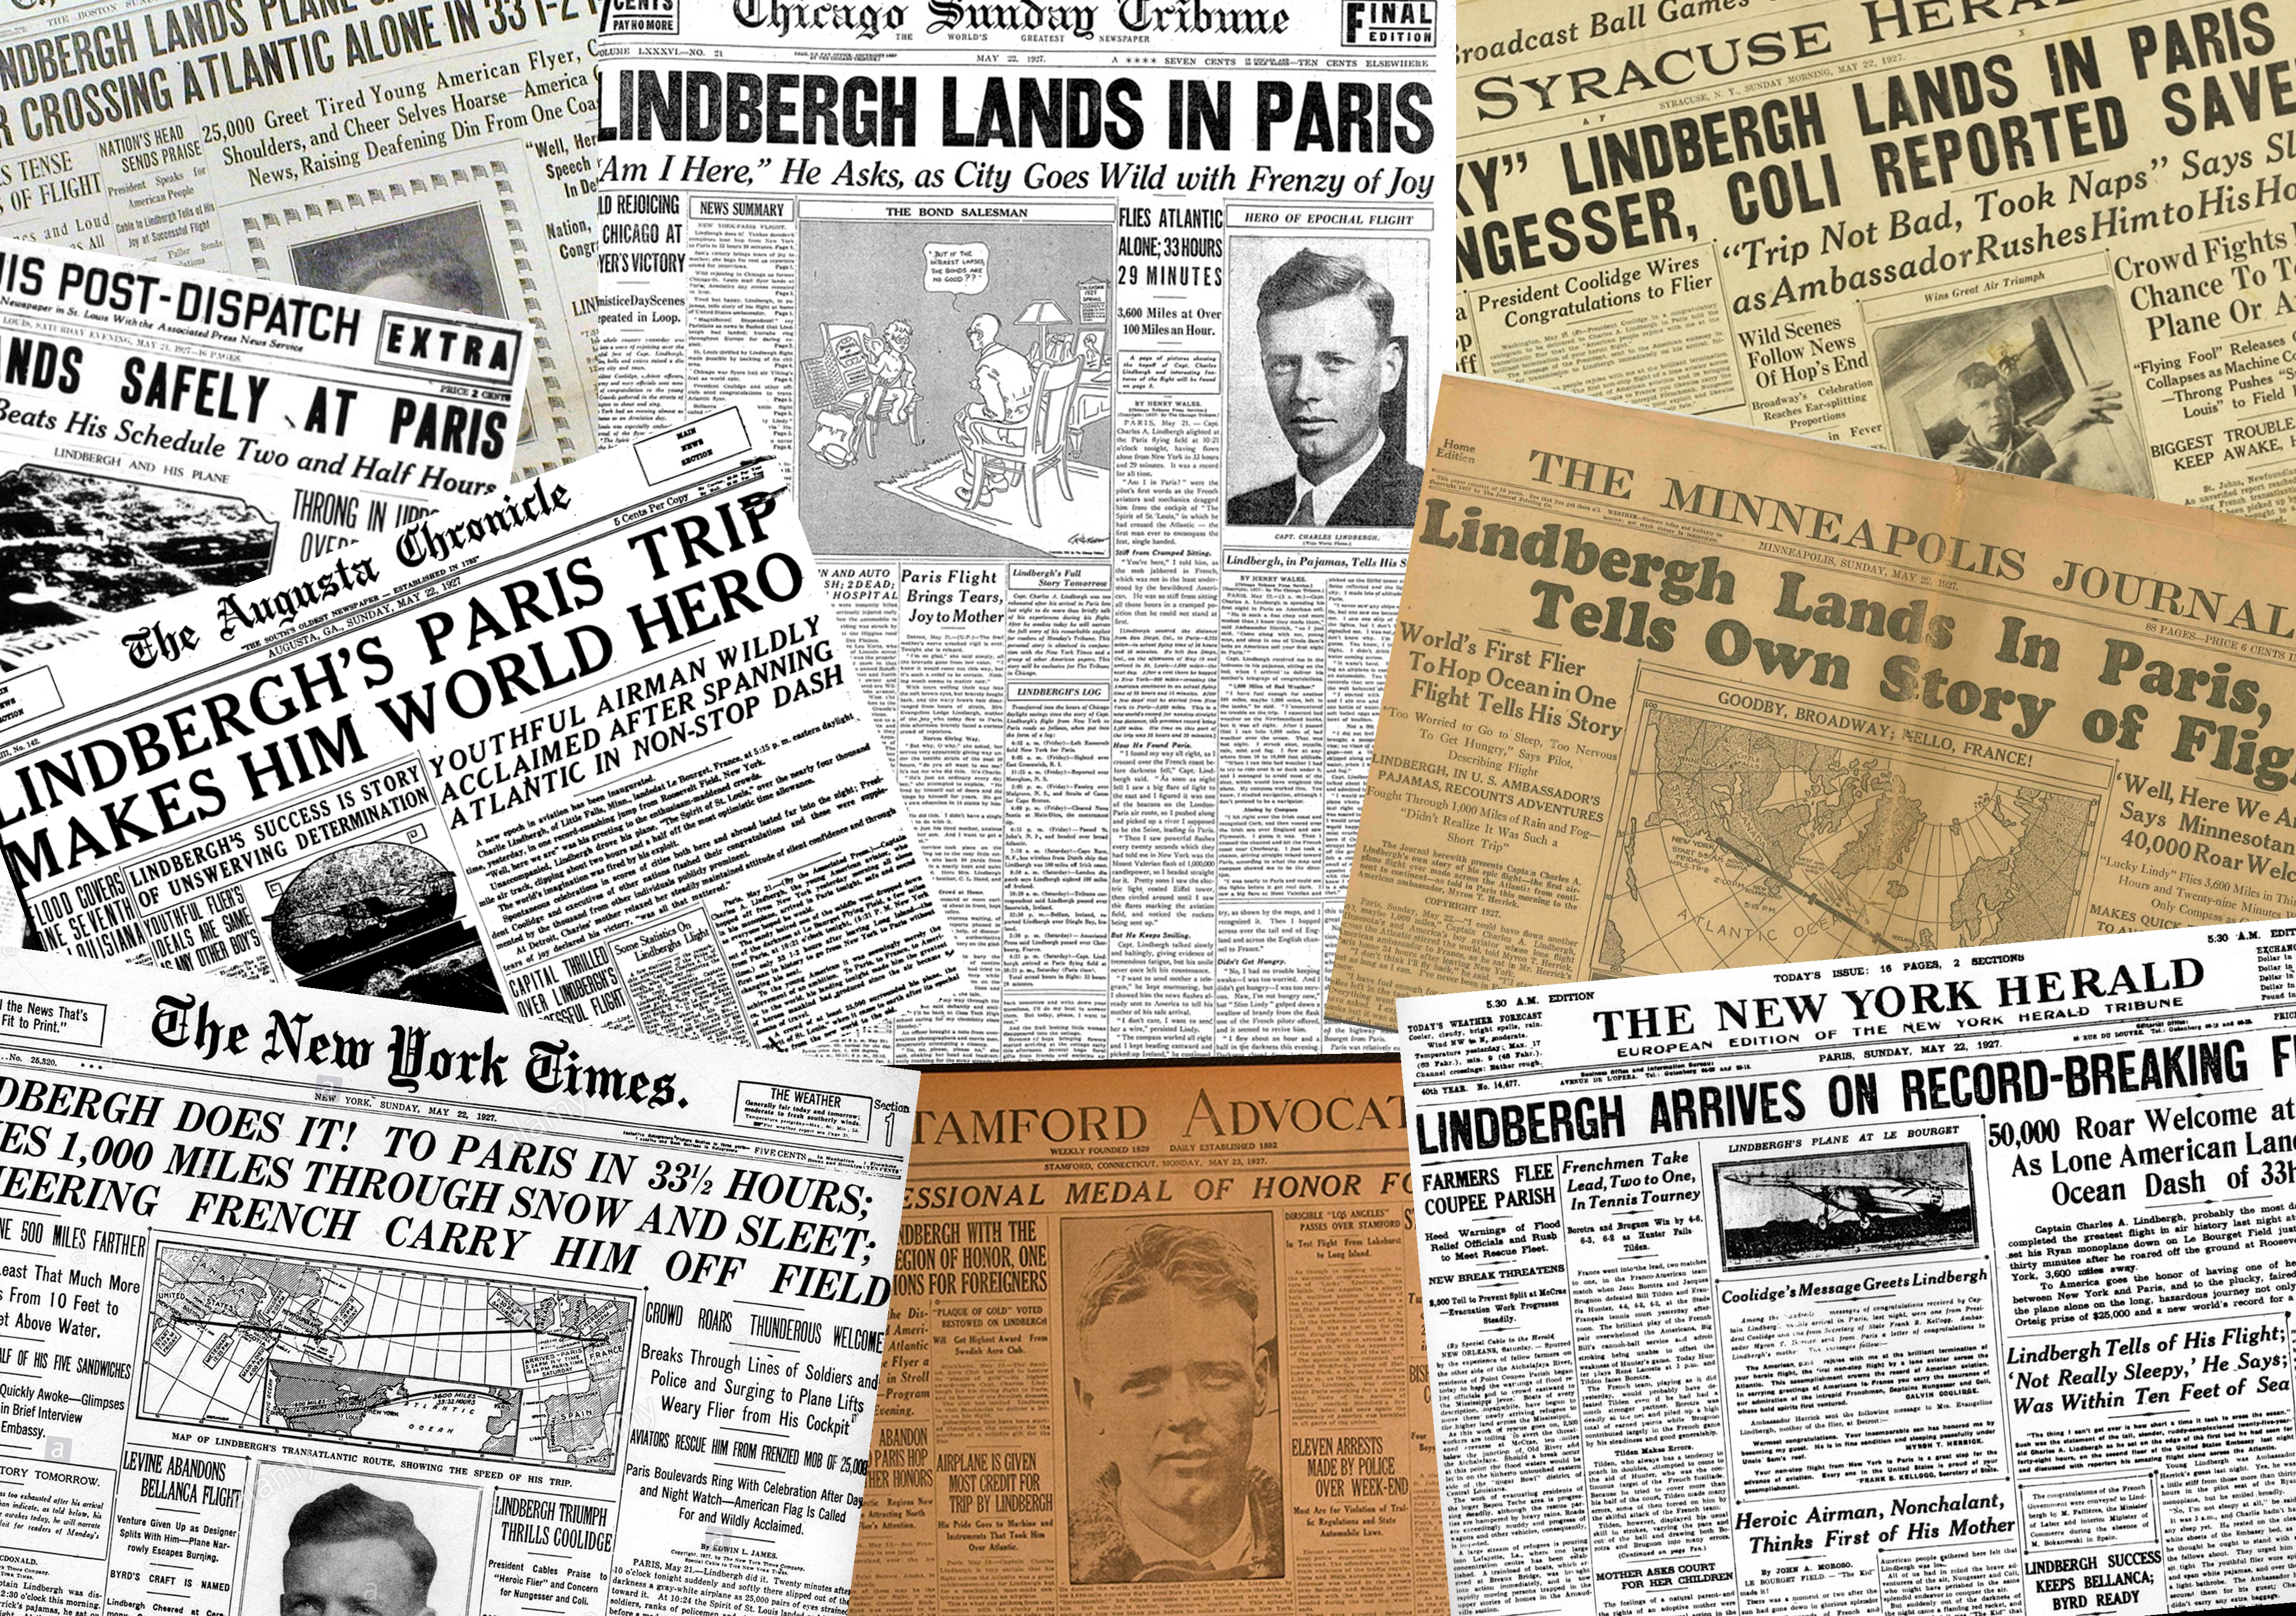 Newspapers reporting on Charles Lindbergh's successful transatlantic flight which concluded in Paris, France, on May 21, 1927.